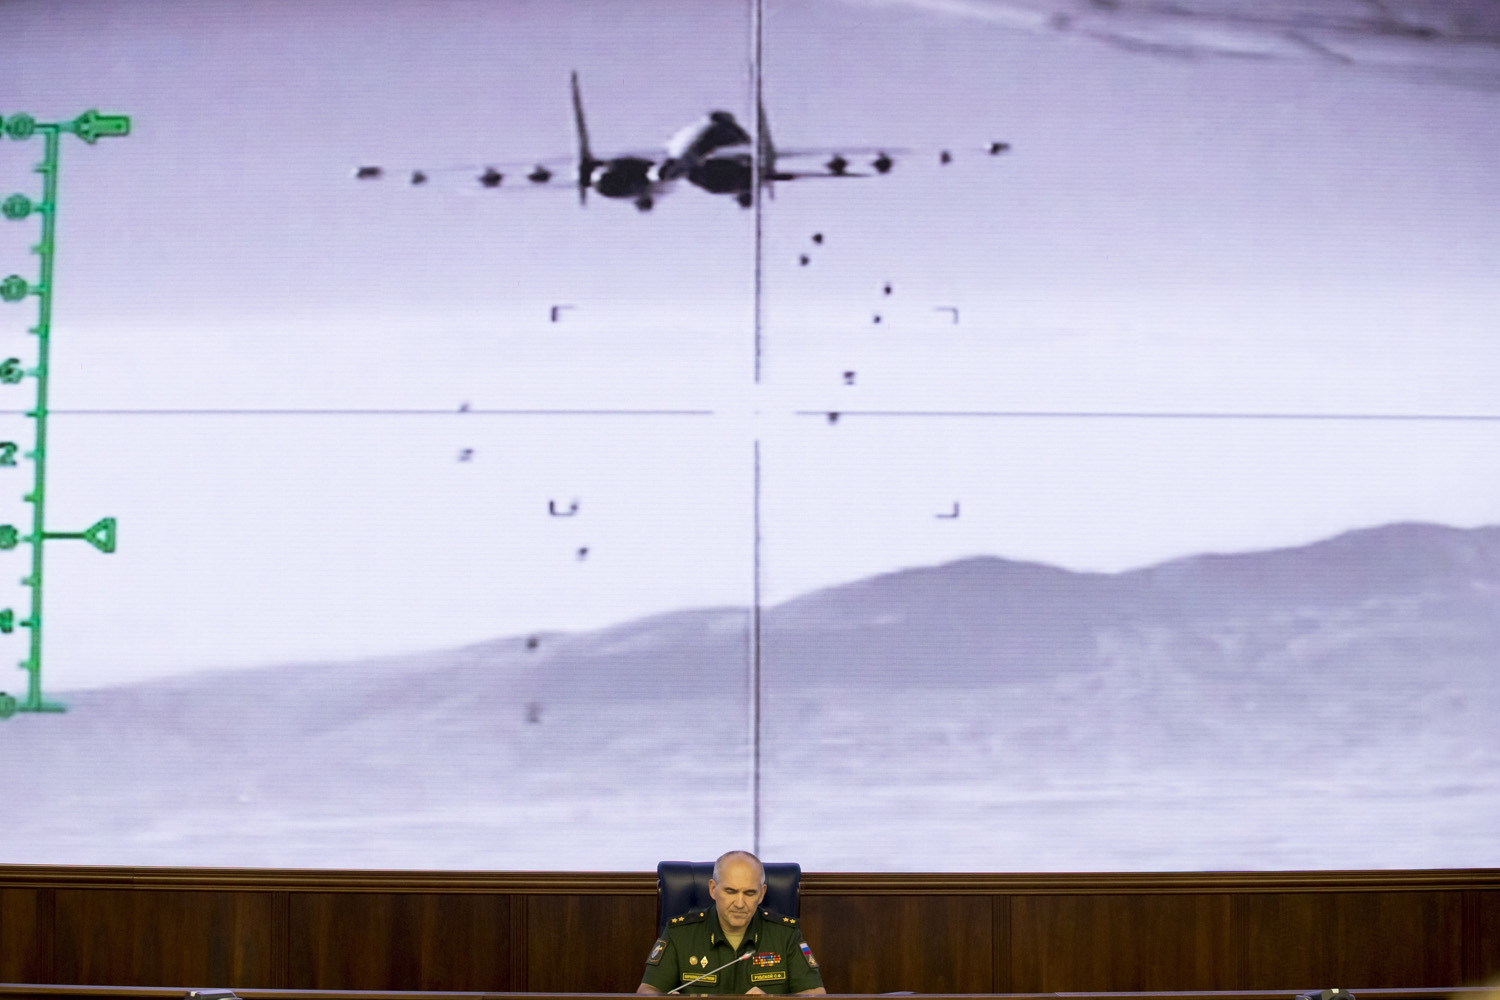 Lt.-Gen. Sergei Rudskoi of the Russian Military General Staff speaks to the media, as a video released by the Russian Defense Ministry shows a Russian warplane unloads its weapons over target on screen at a Russian Defense Ministry building in Moscow, Russia, Wednesday, Aug. 10, 2016. Rudskoi said that fighting in Aleppo will cease for three hours daily to allow humanitarian aid deliveries. (AP Photo/Ivan Sekretarev)